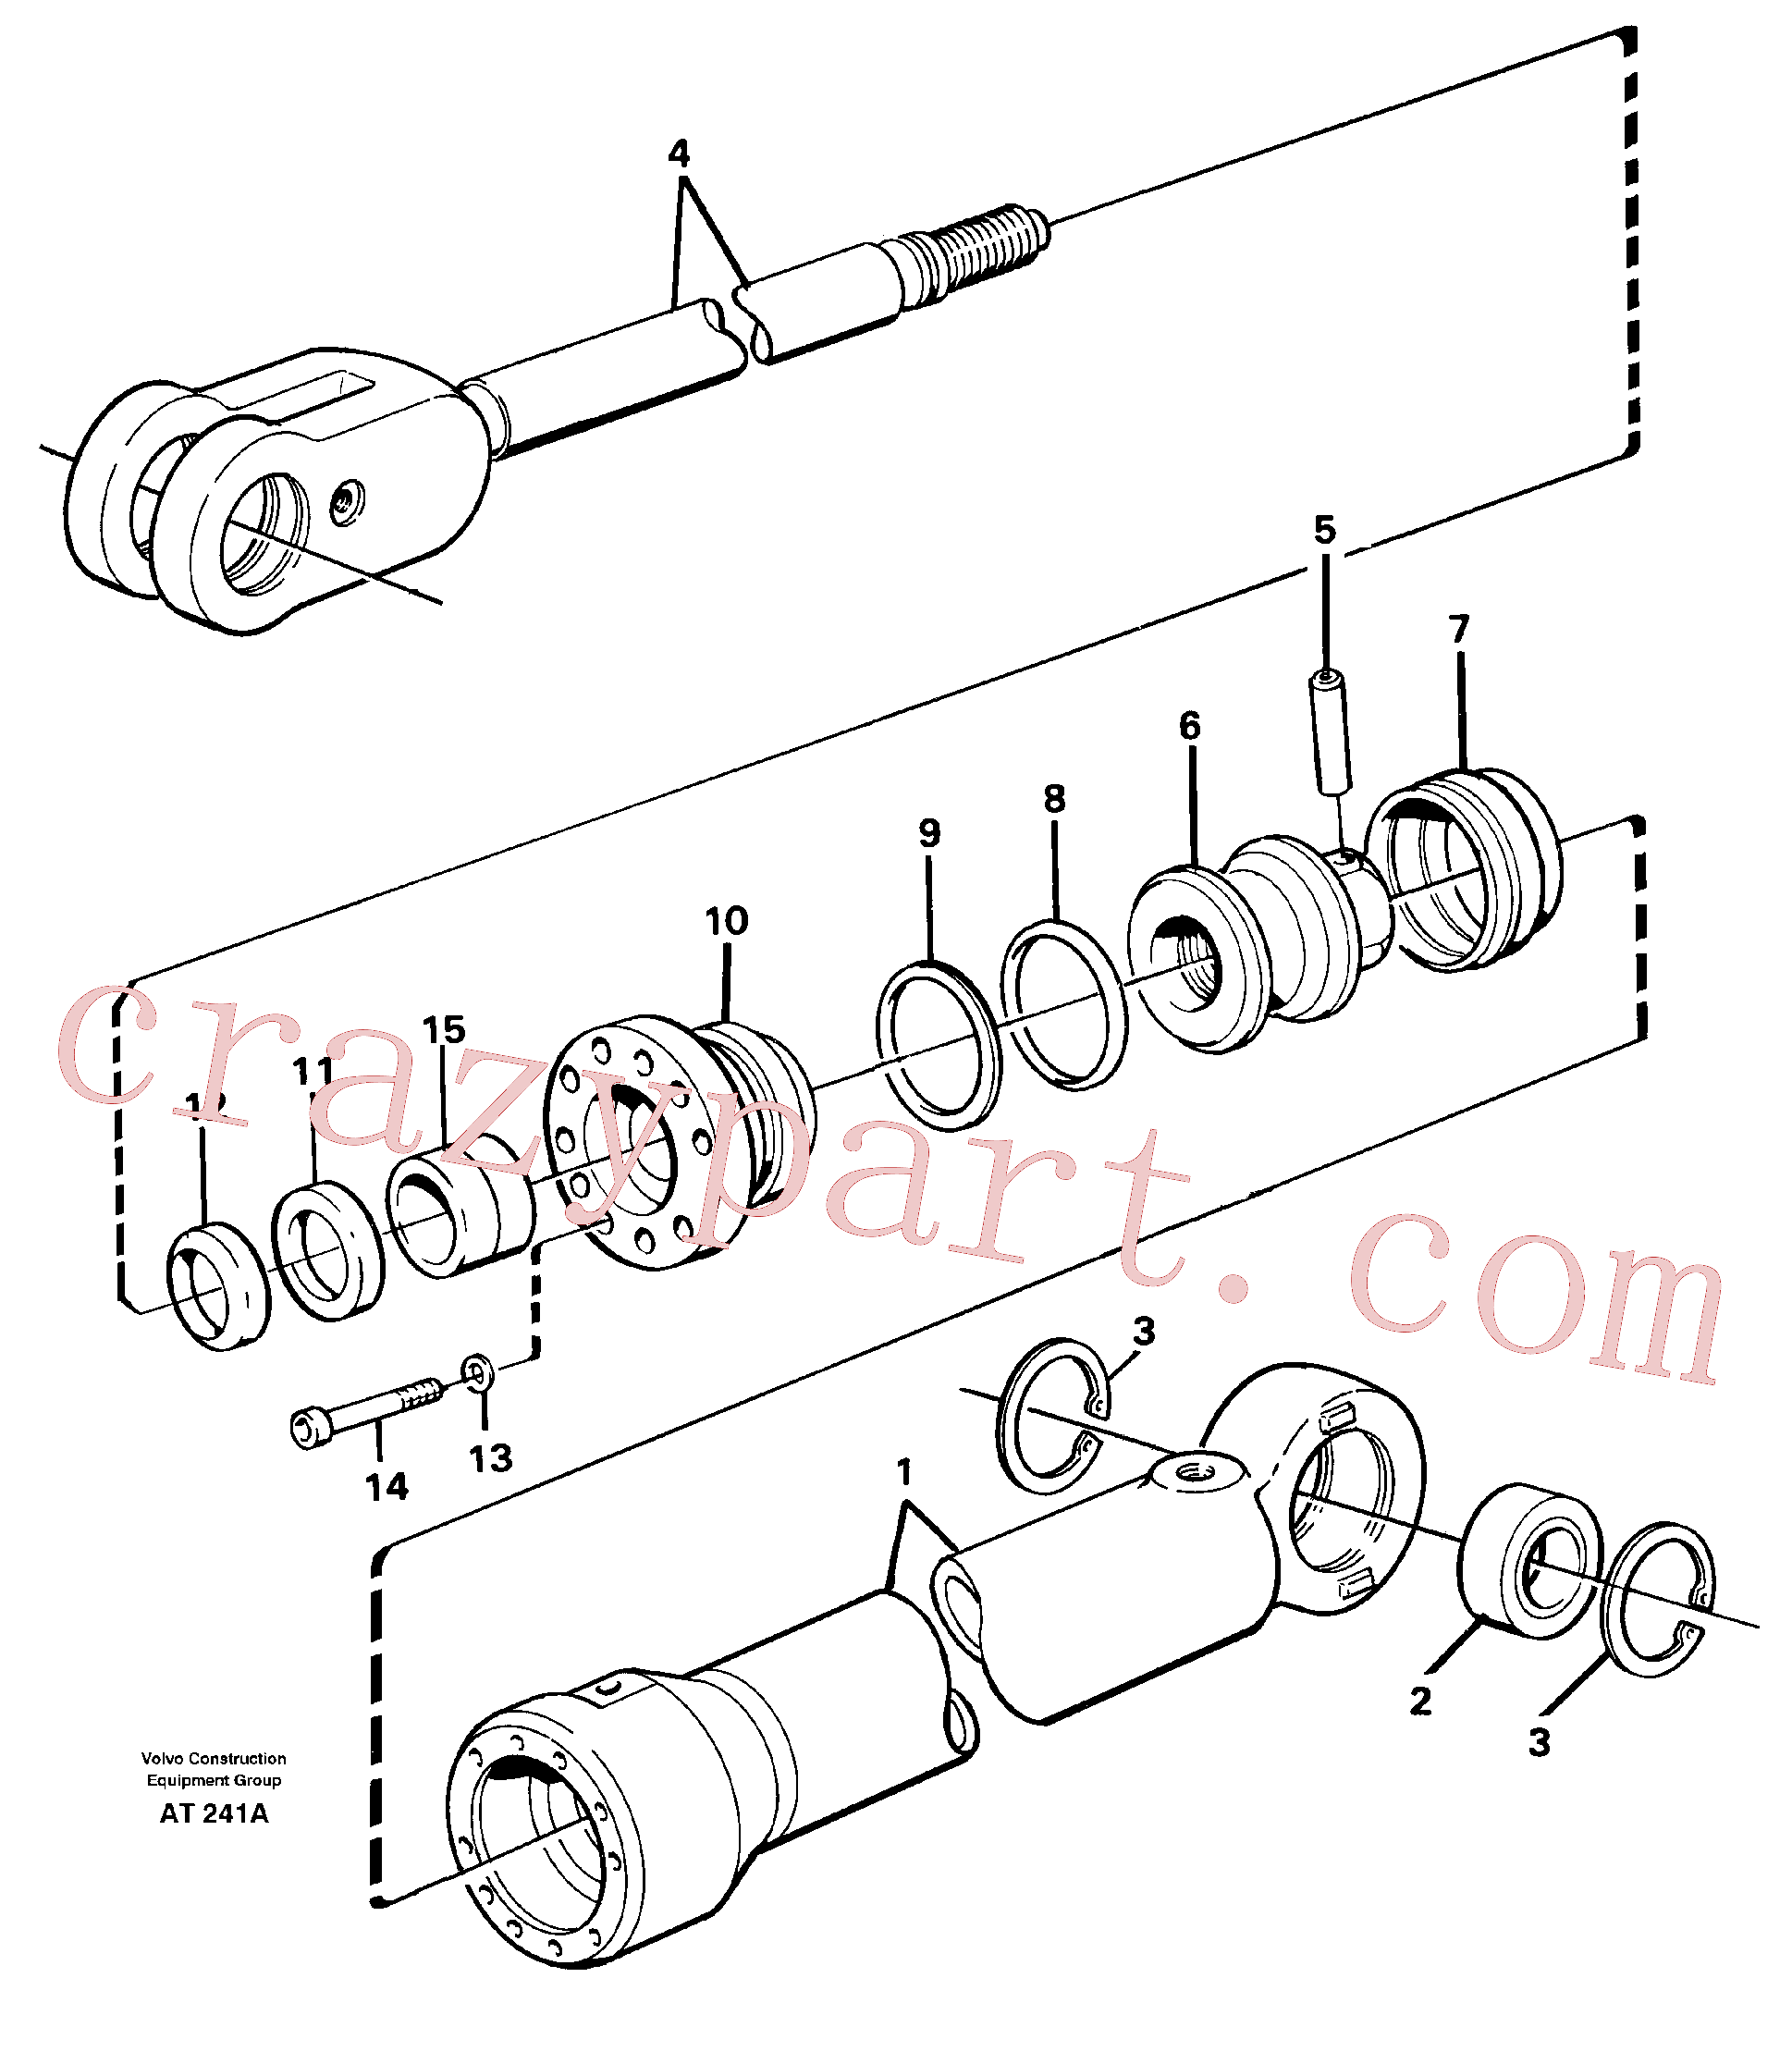 CH18340 for Volvo Hydraulic cylinder(AT241A assembly)